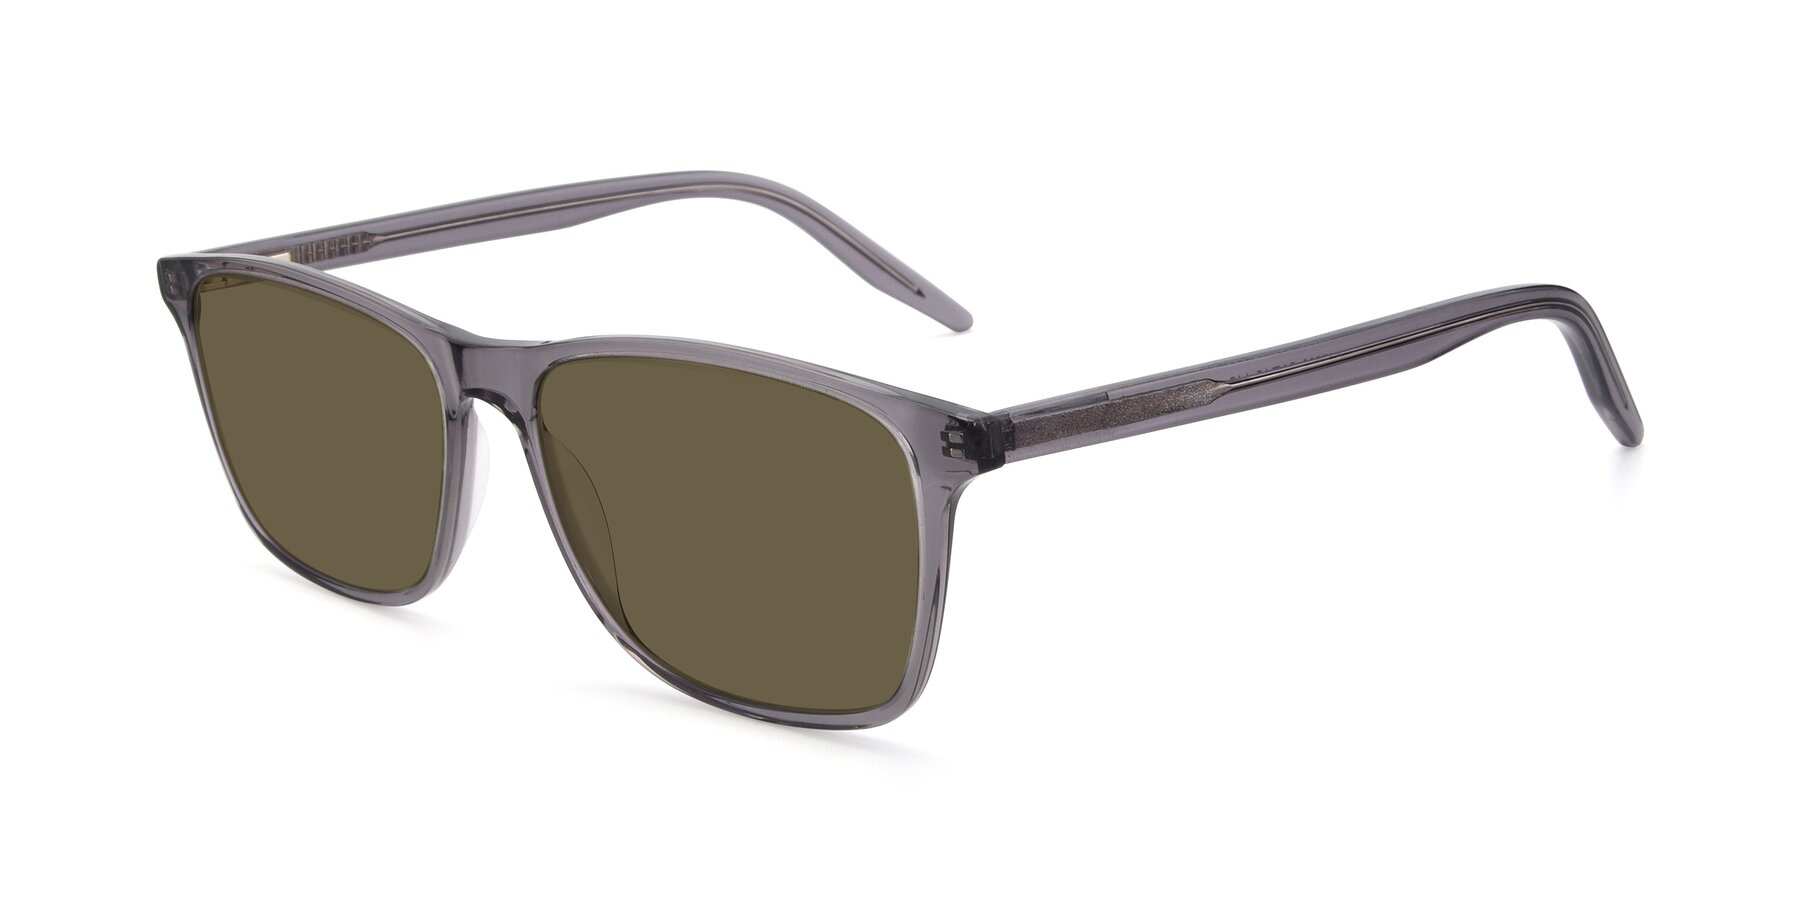 Angle of 17500 in Transparent Grey with Brown Polarized Lenses